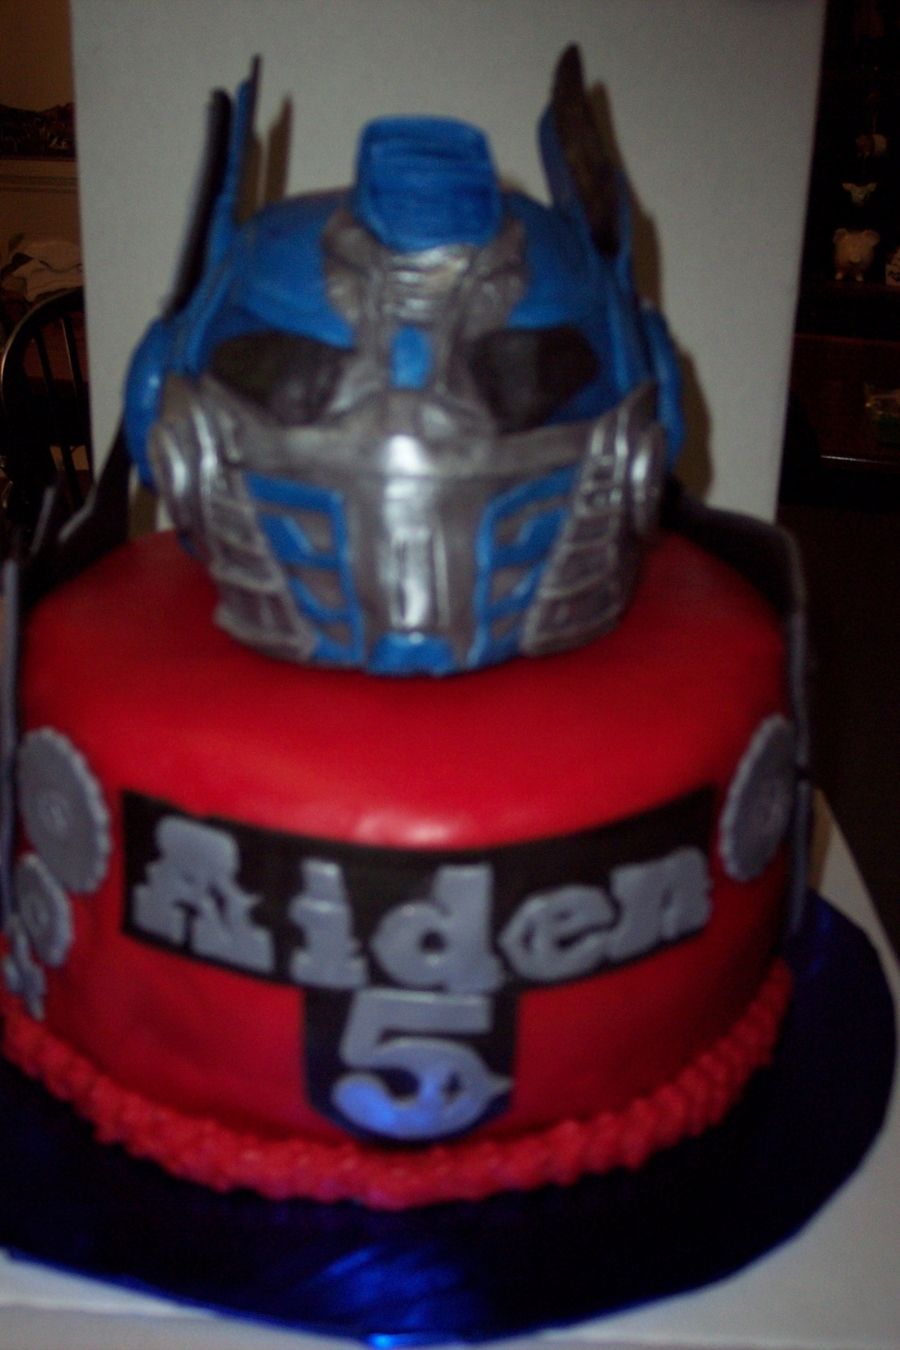 Pleasing Optimus Prime Transformers Birthday Cake Cakecentral Com Personalised Birthday Cards Paralily Jamesorg